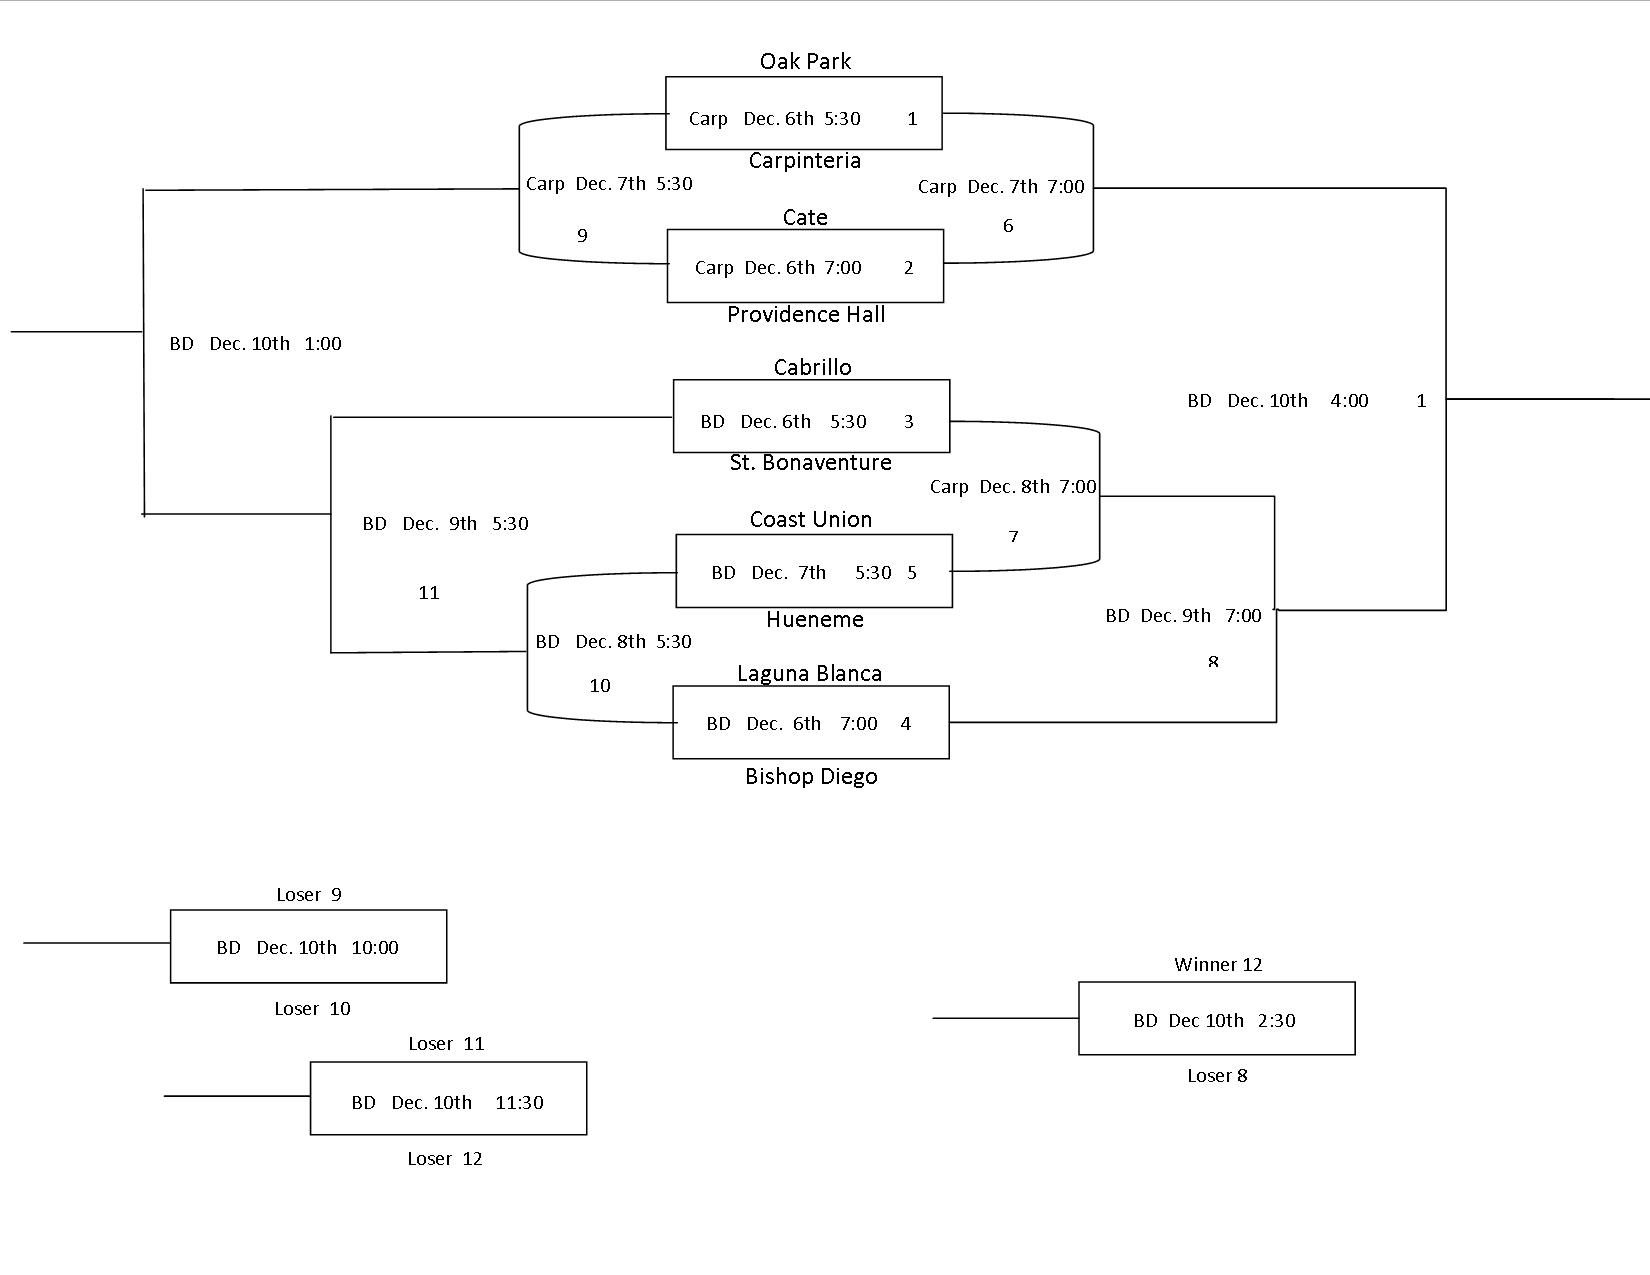 5 Team Sports Bracket http://www.superiorsportsbra.com/12-team-sports-bracket/